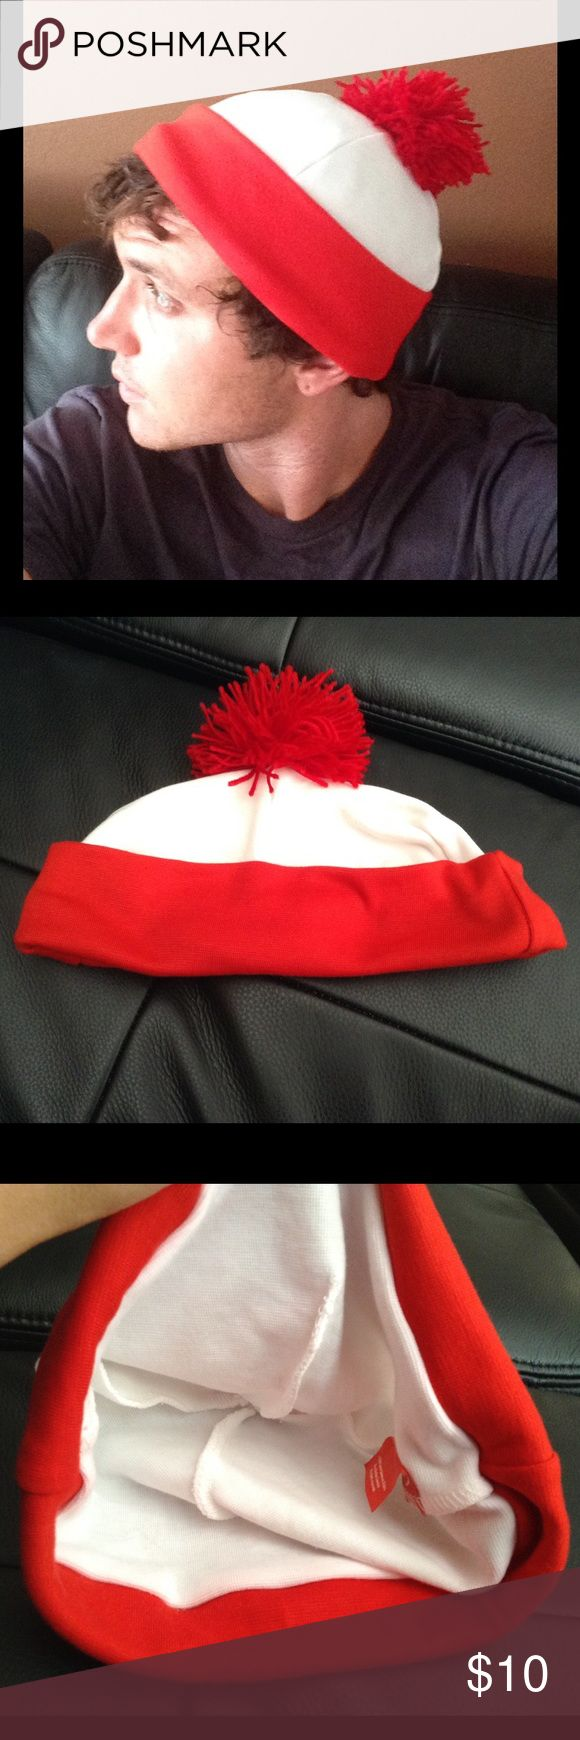 Official Where's Waldo hat Official Where's Waldo hat. Beanie style with red puff at top. Limited distribution. Excellent condition! Where's Waldo Accessories Hats